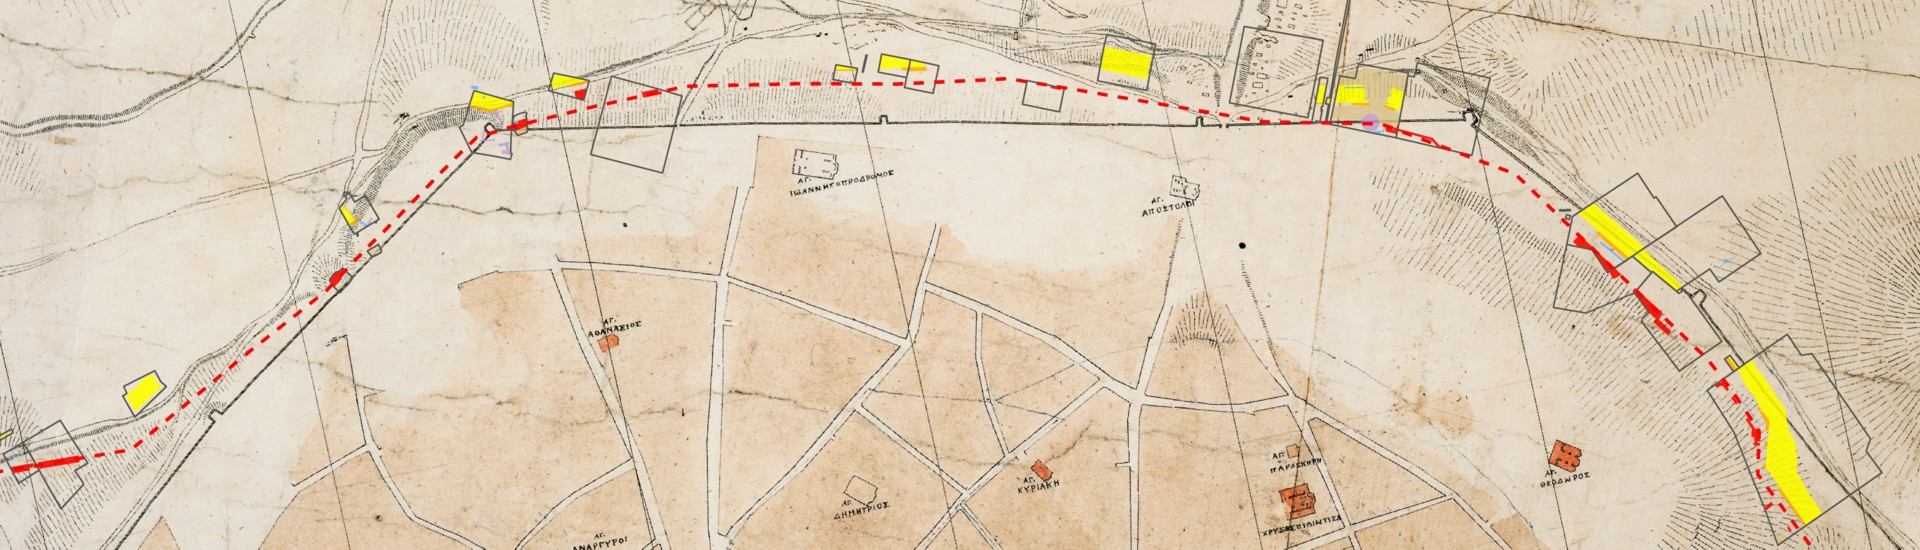 The northern part of the city of Athens from the Kleanthis and Schaubert map (1831-32) showing the course of the wall of Haseki (1778). The line of the Themistokleian wall (479/8 BC) is overlaid (in red) based on excavated remains.